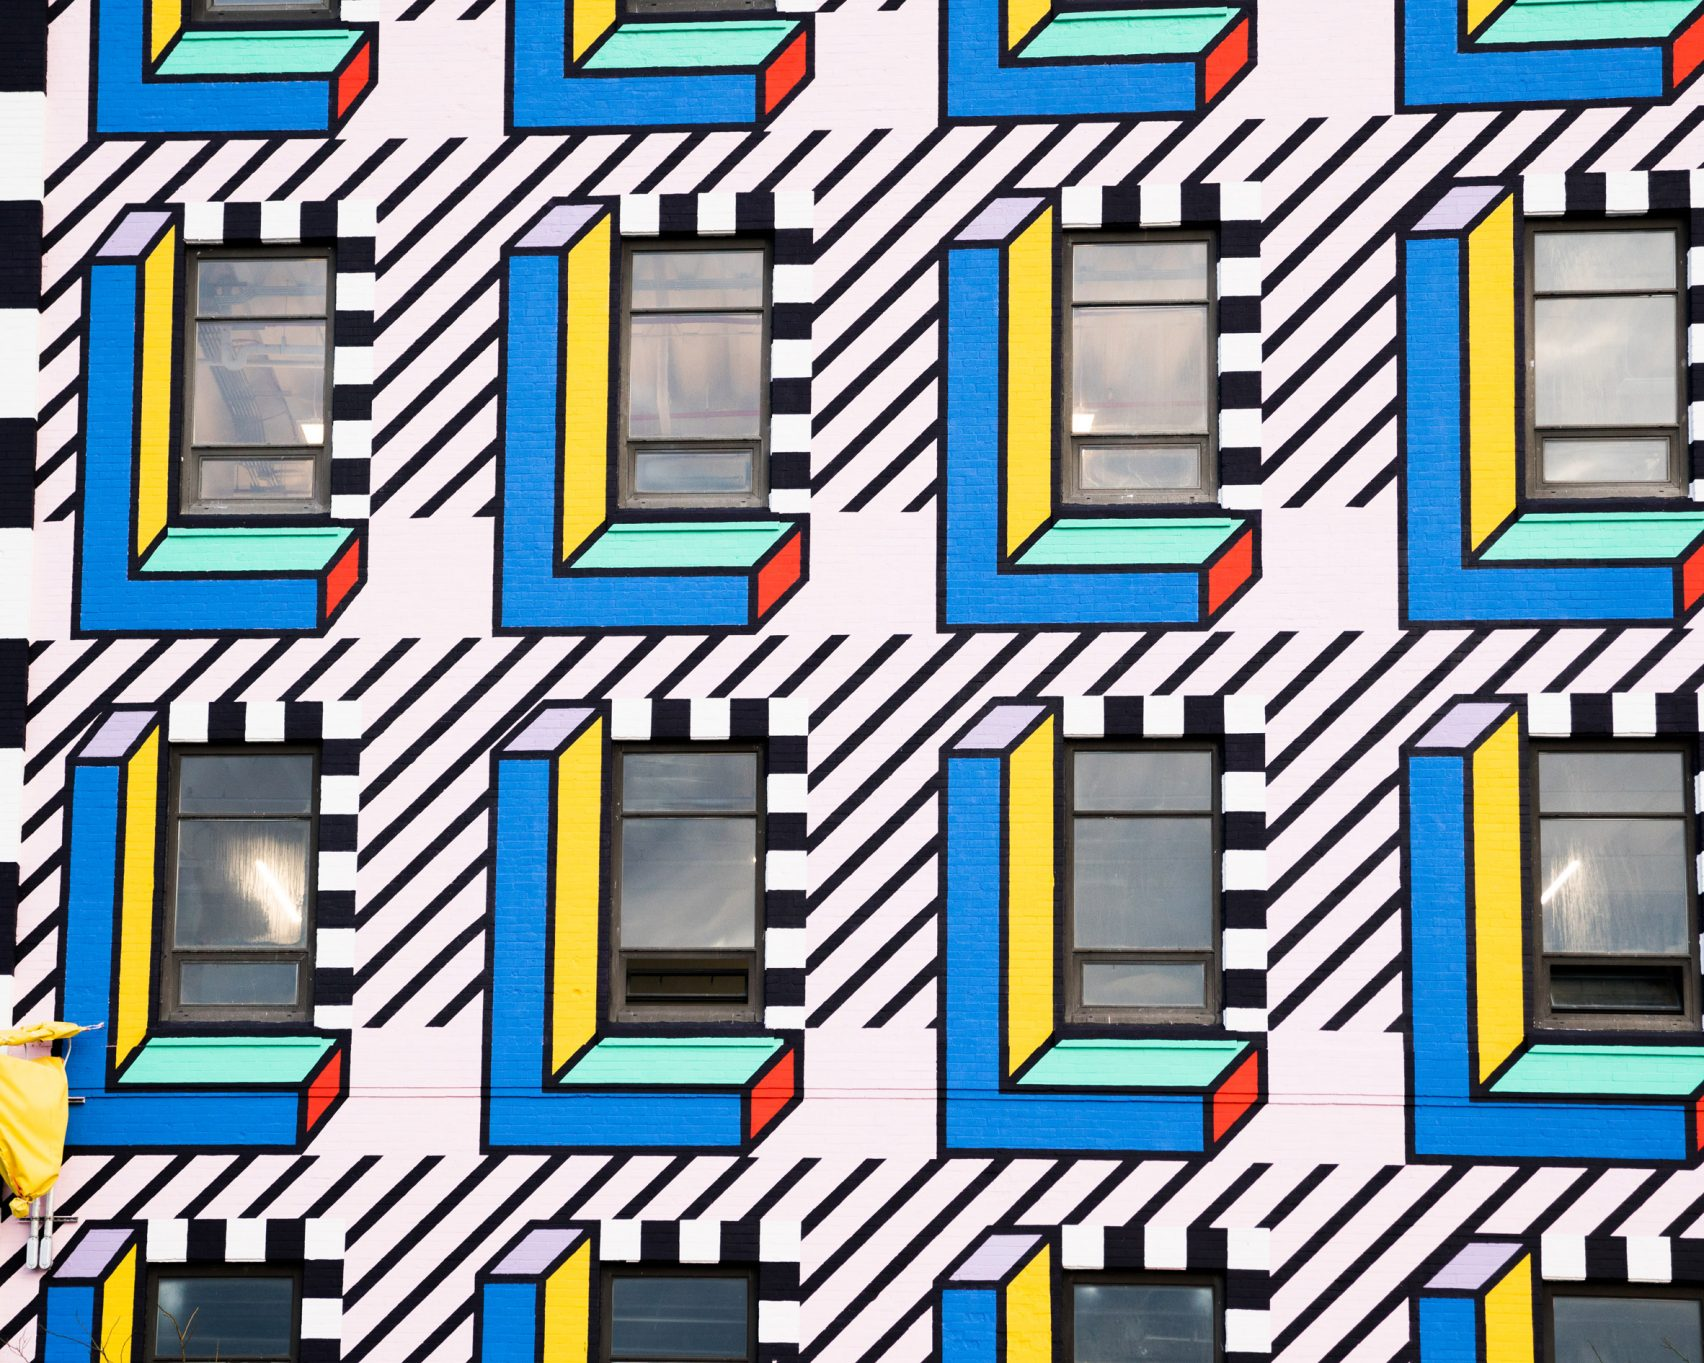 industry-city-camille-walala-wanteddesign-02